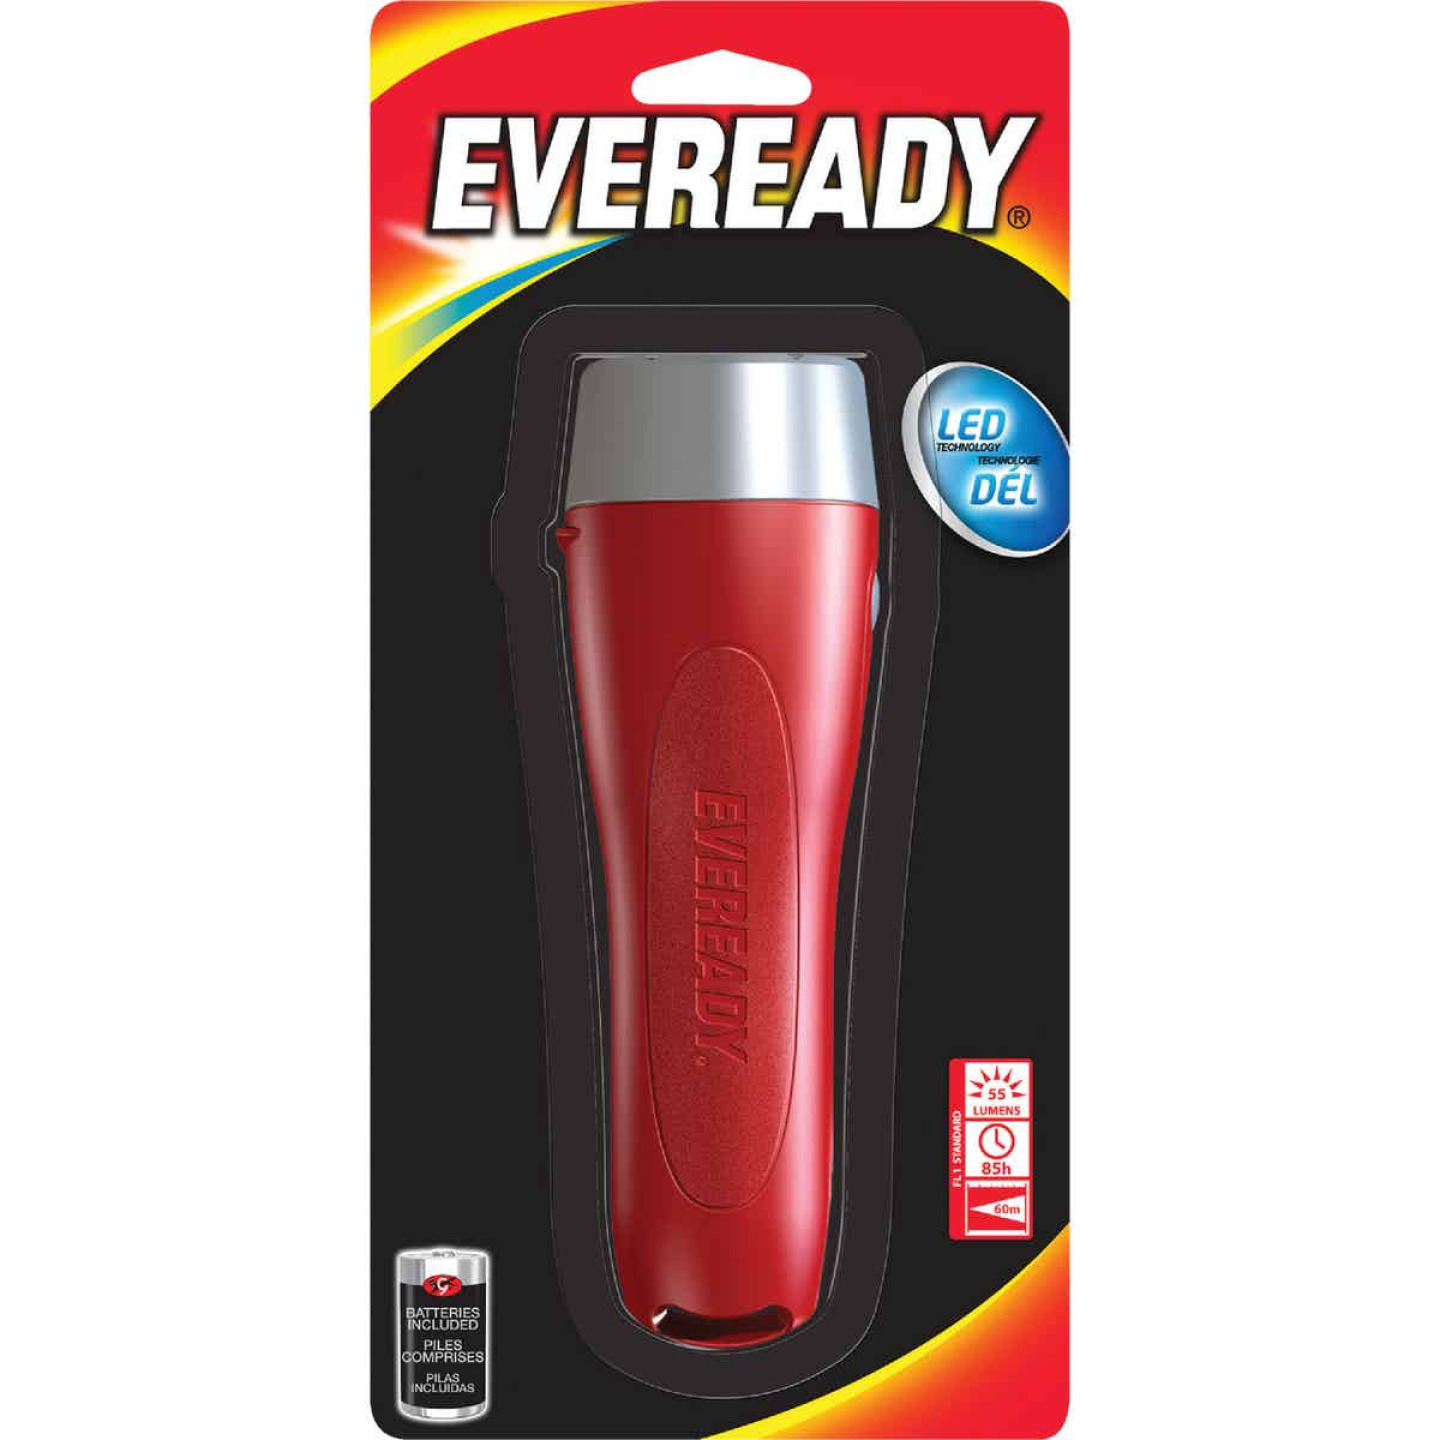 Eveready Red Long Life LED Flashlight Image 1